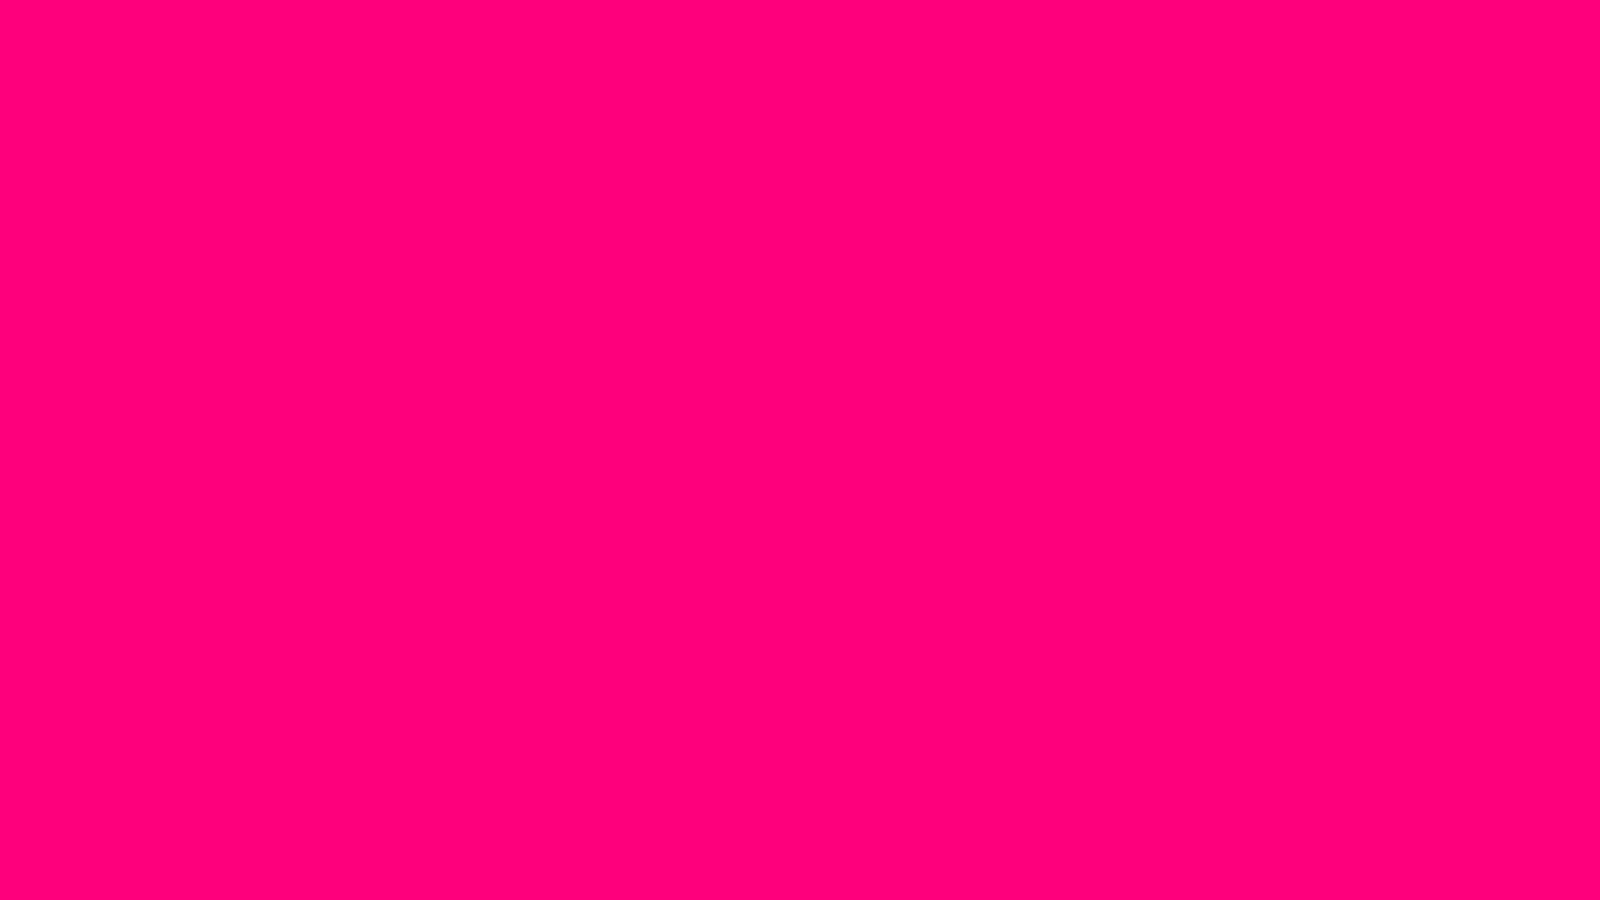 1600x900 Bright Pink Solid Color Background